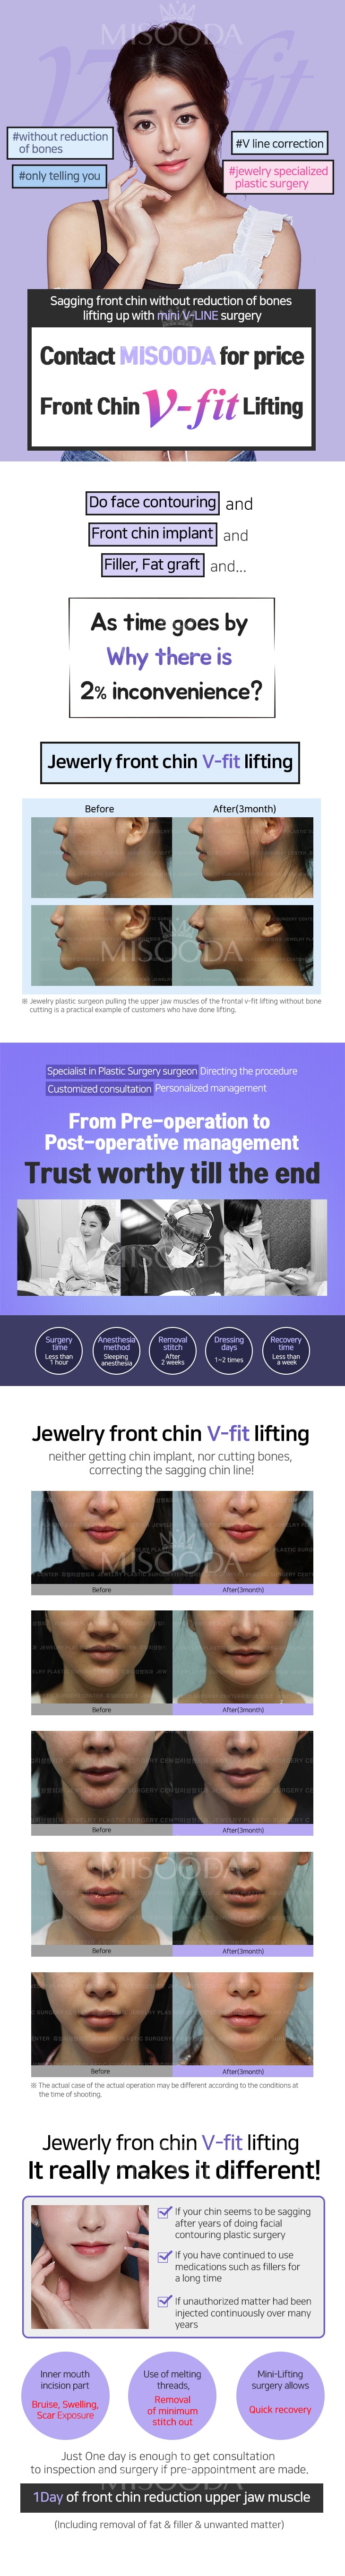 Front Chin V-fit Lifting (Contact MISOODA for price)